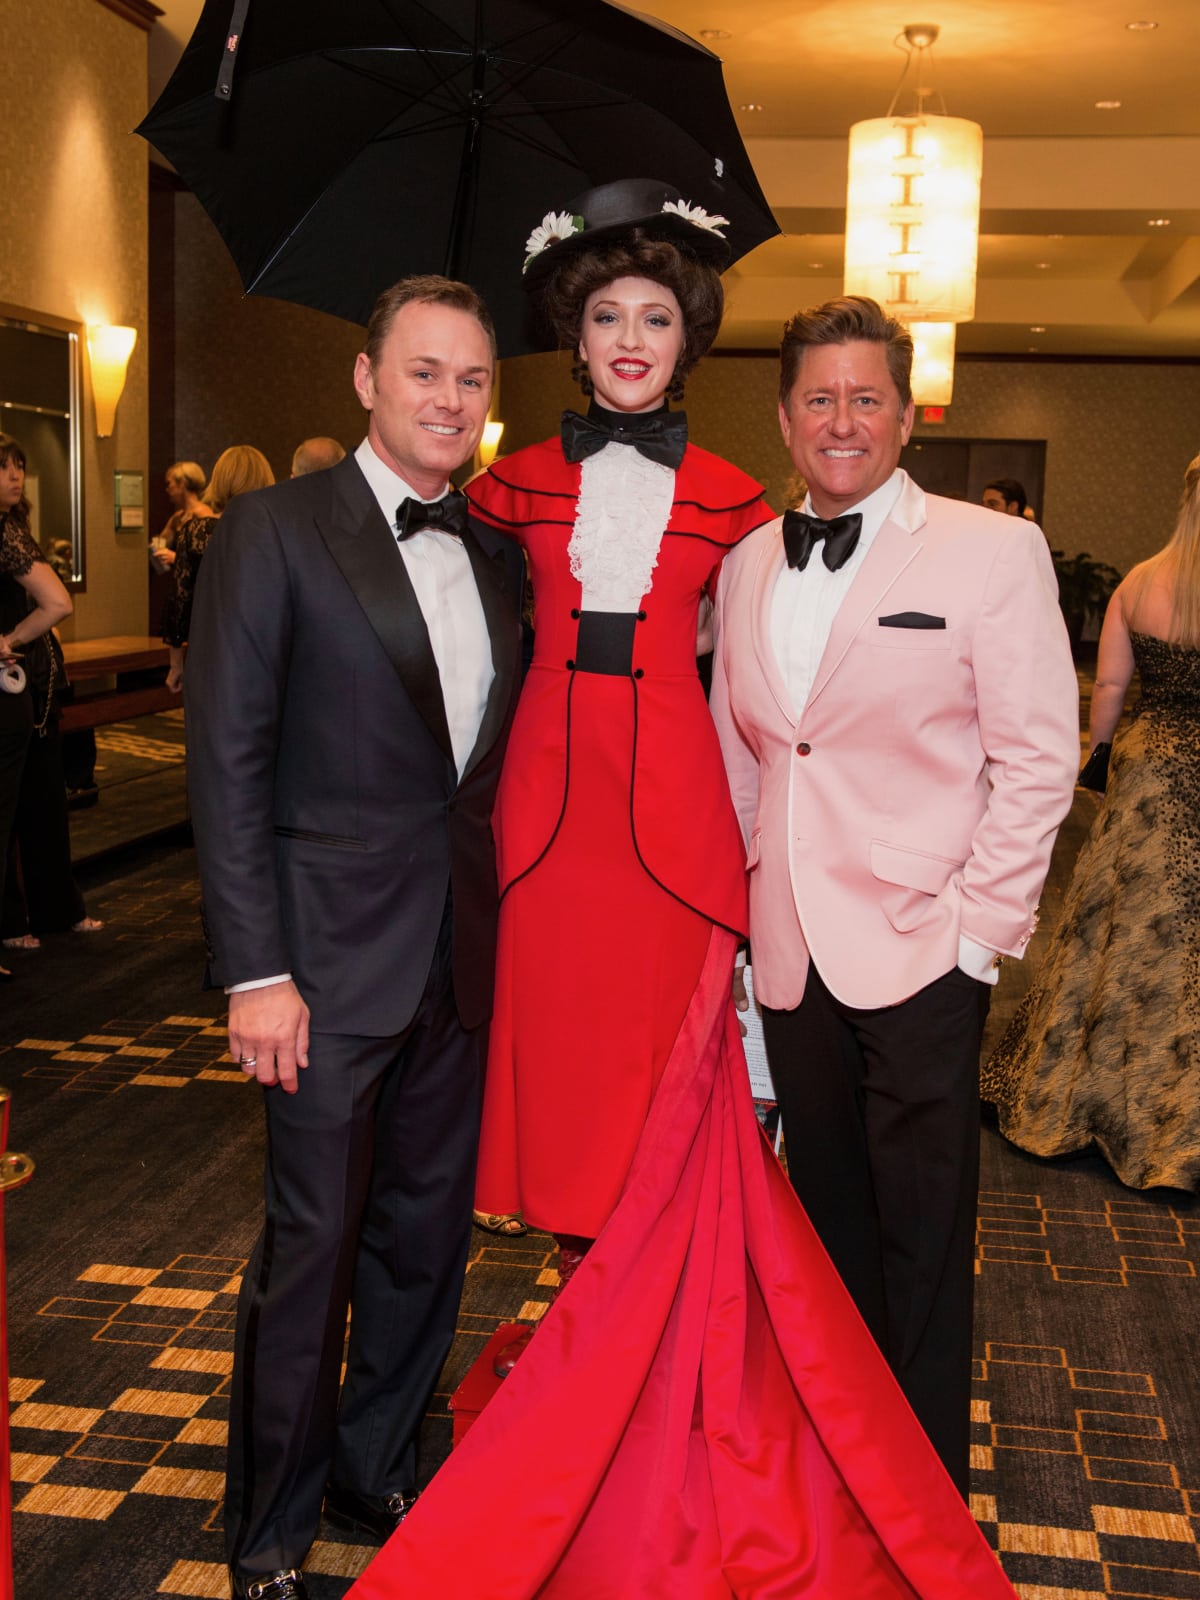 Andrew Cordes, Mary Poppins and Brian Teichman